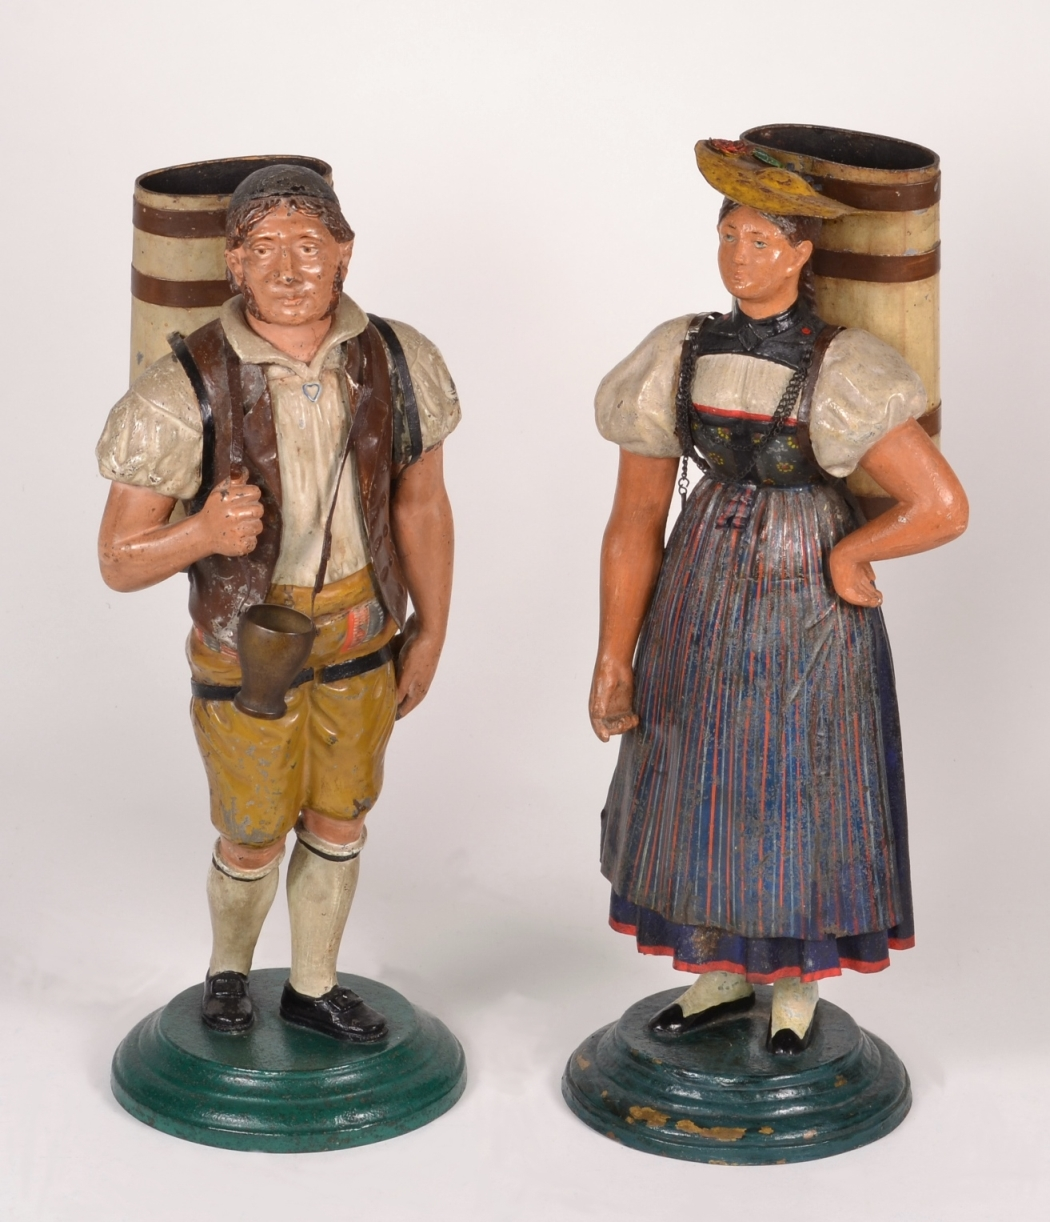 View 11: Pair of Tole Figures, c. 1820-40